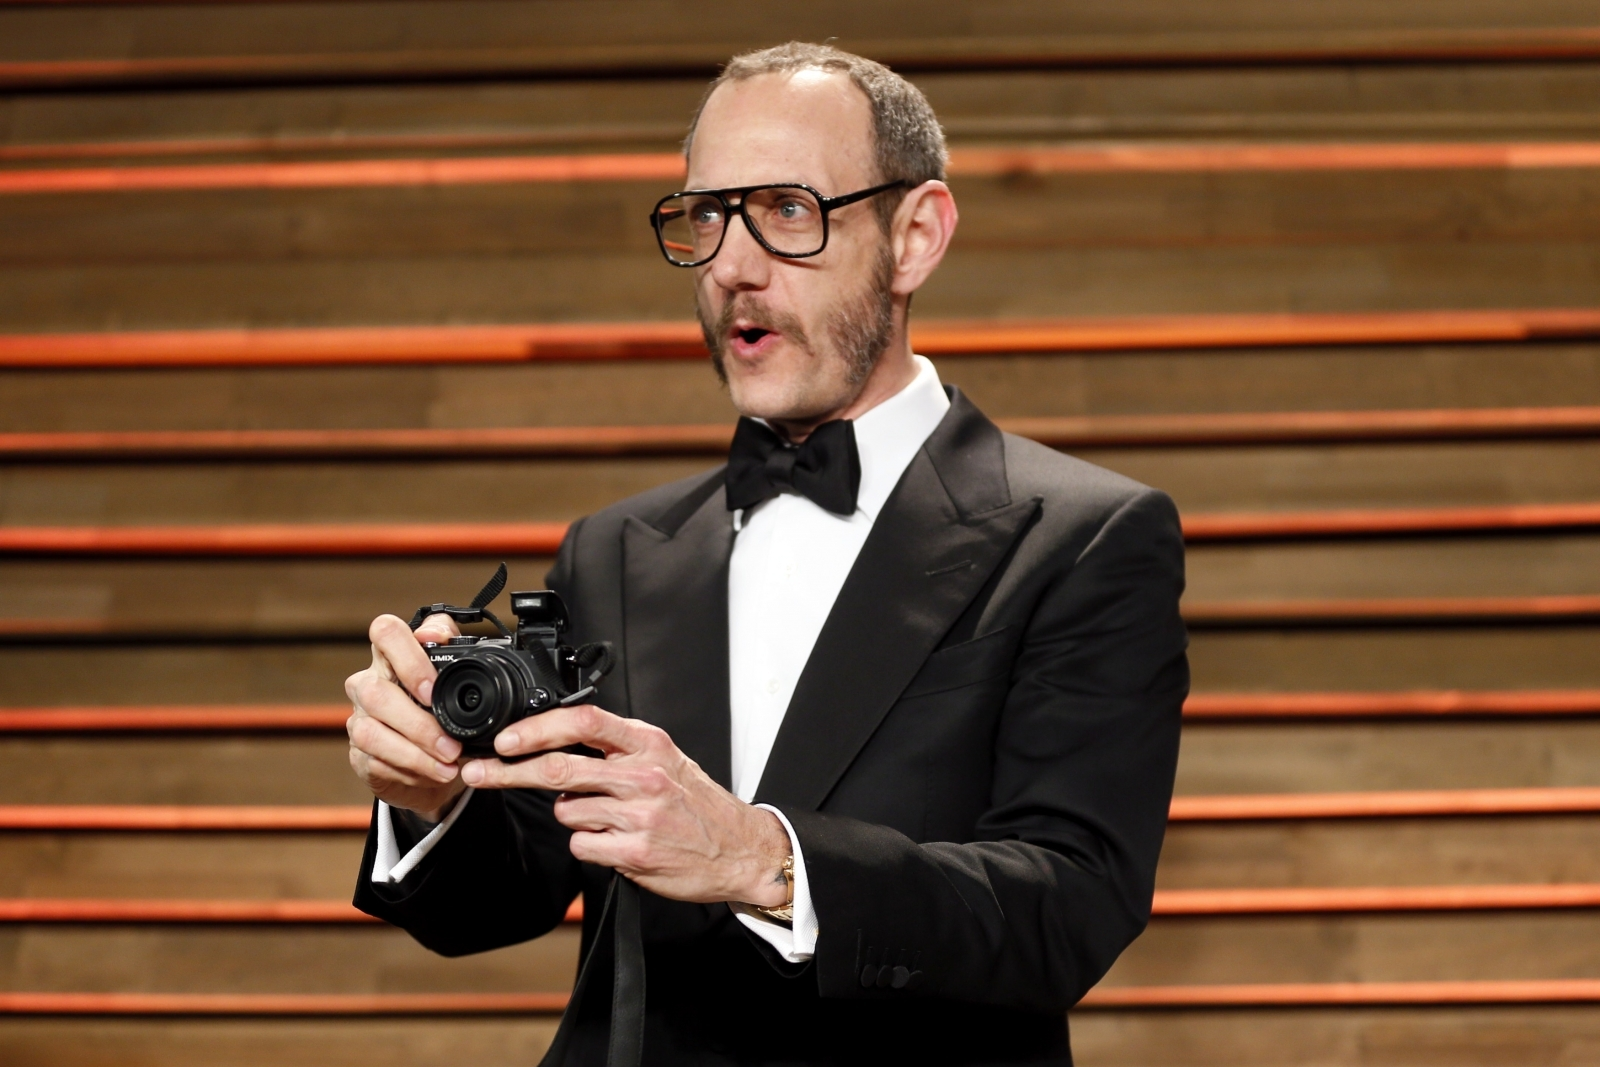 Fashion Photographer Terry Richardson Banned From 'Vogue' Over Sexual Misconduct Allegations